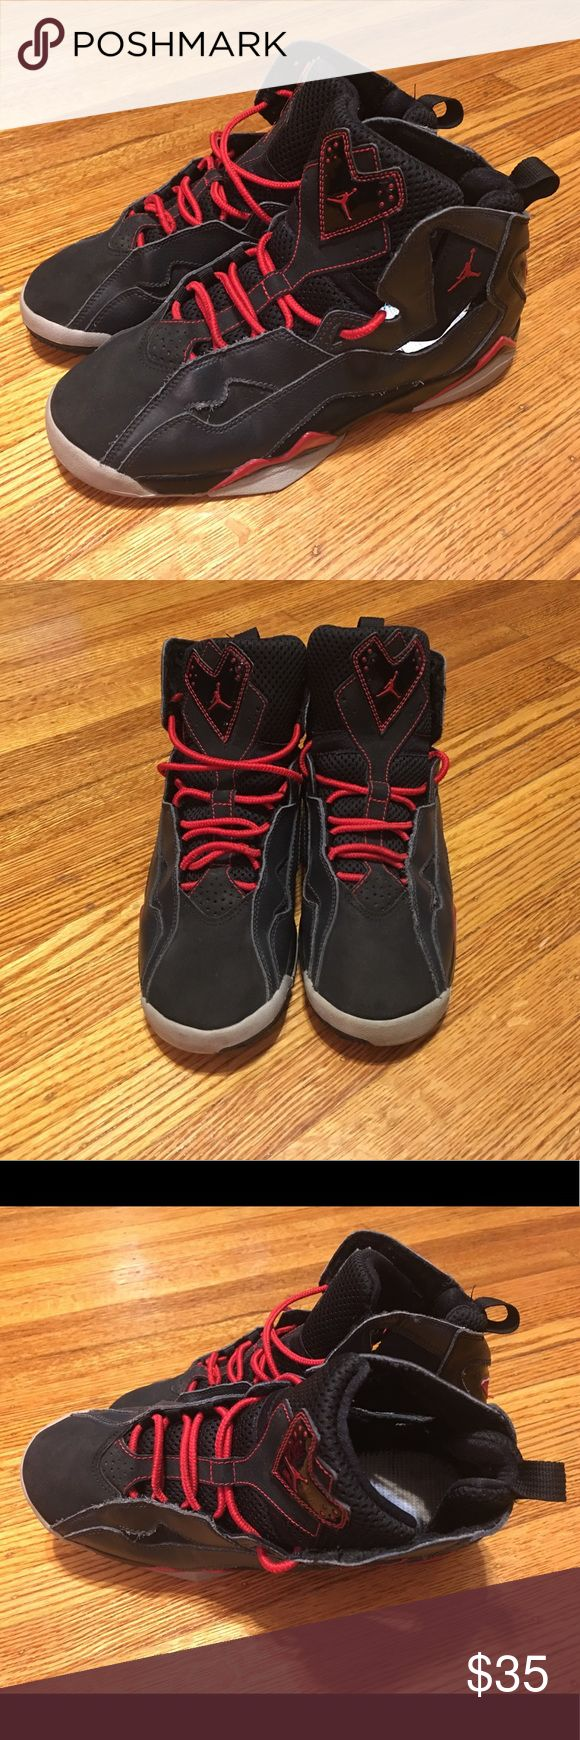 🛍 MAKE OFFER Nike Jordan True Flights Size 6.5y Black, Grey and Red Nike Jordan True Flights. Needs insoles. Nike Shoes Sneakers